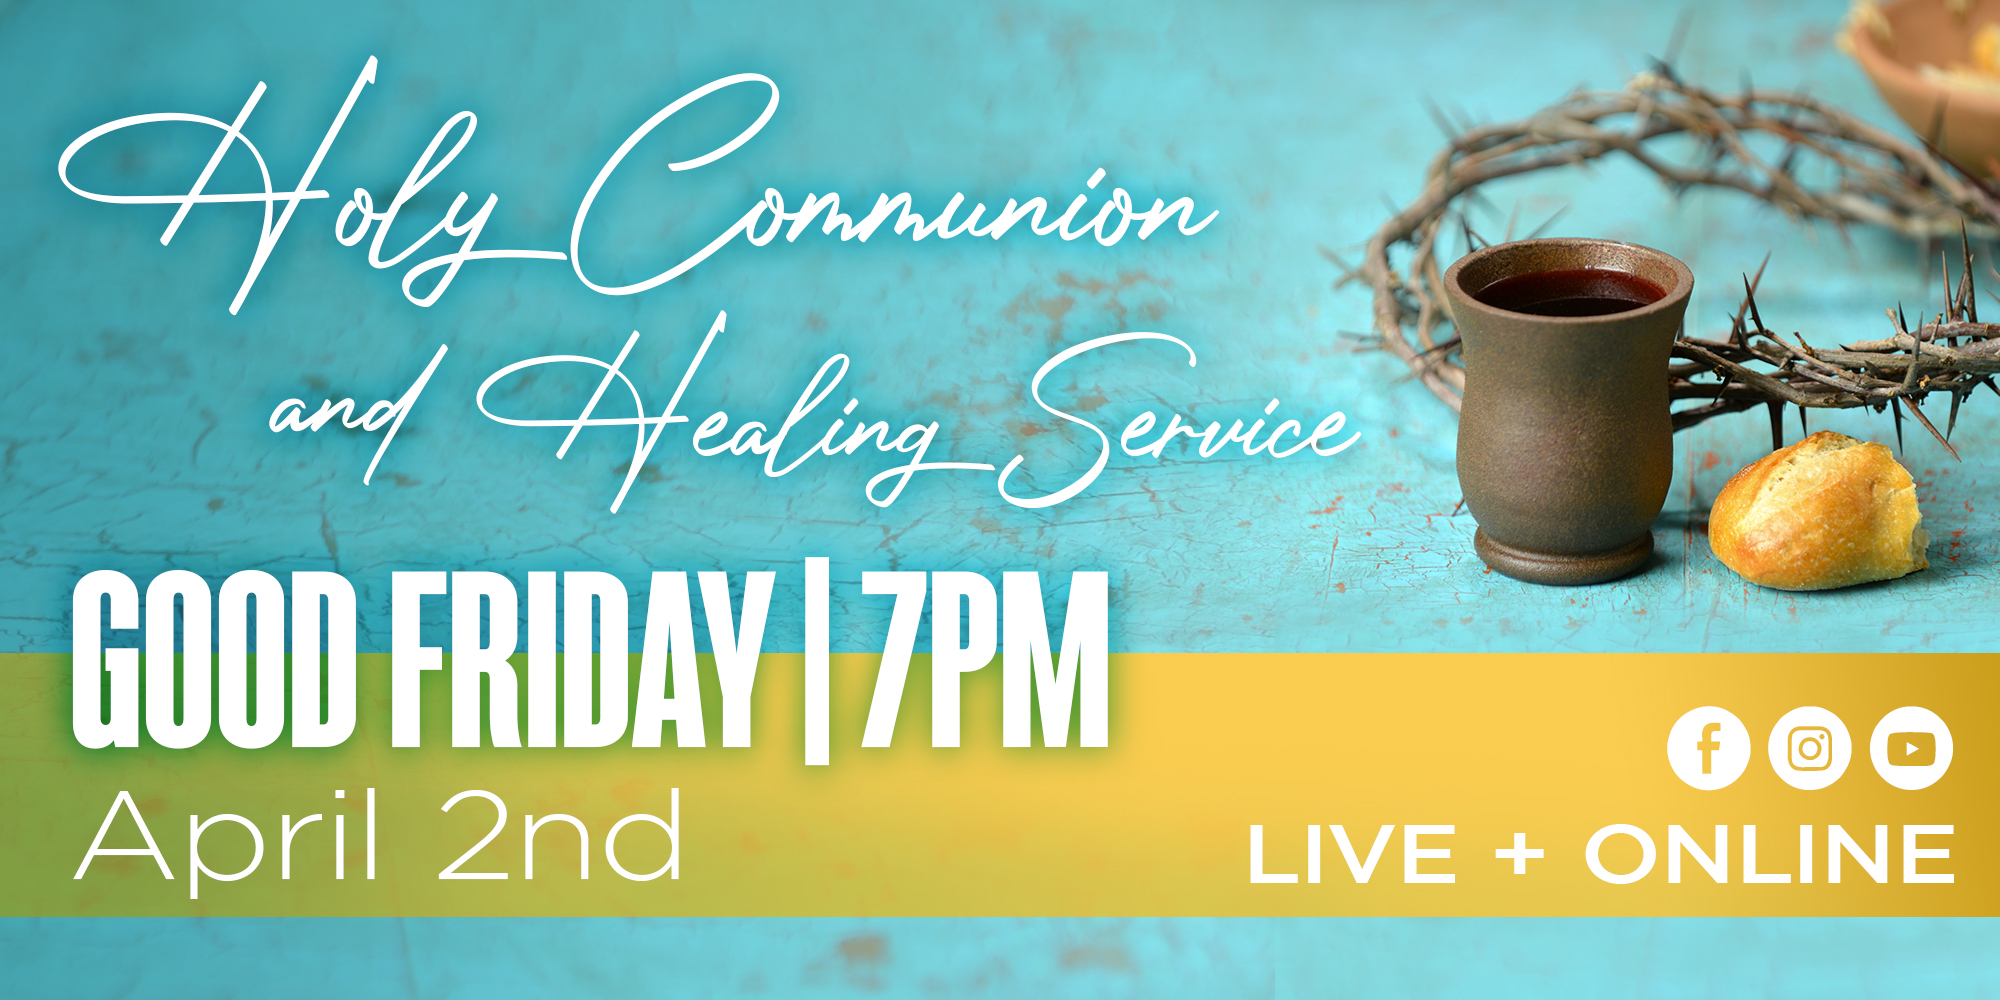 Holy Communion and Healing Service Good Friday 7PM April 2nd Live + Online Facebook Instagram Youtube